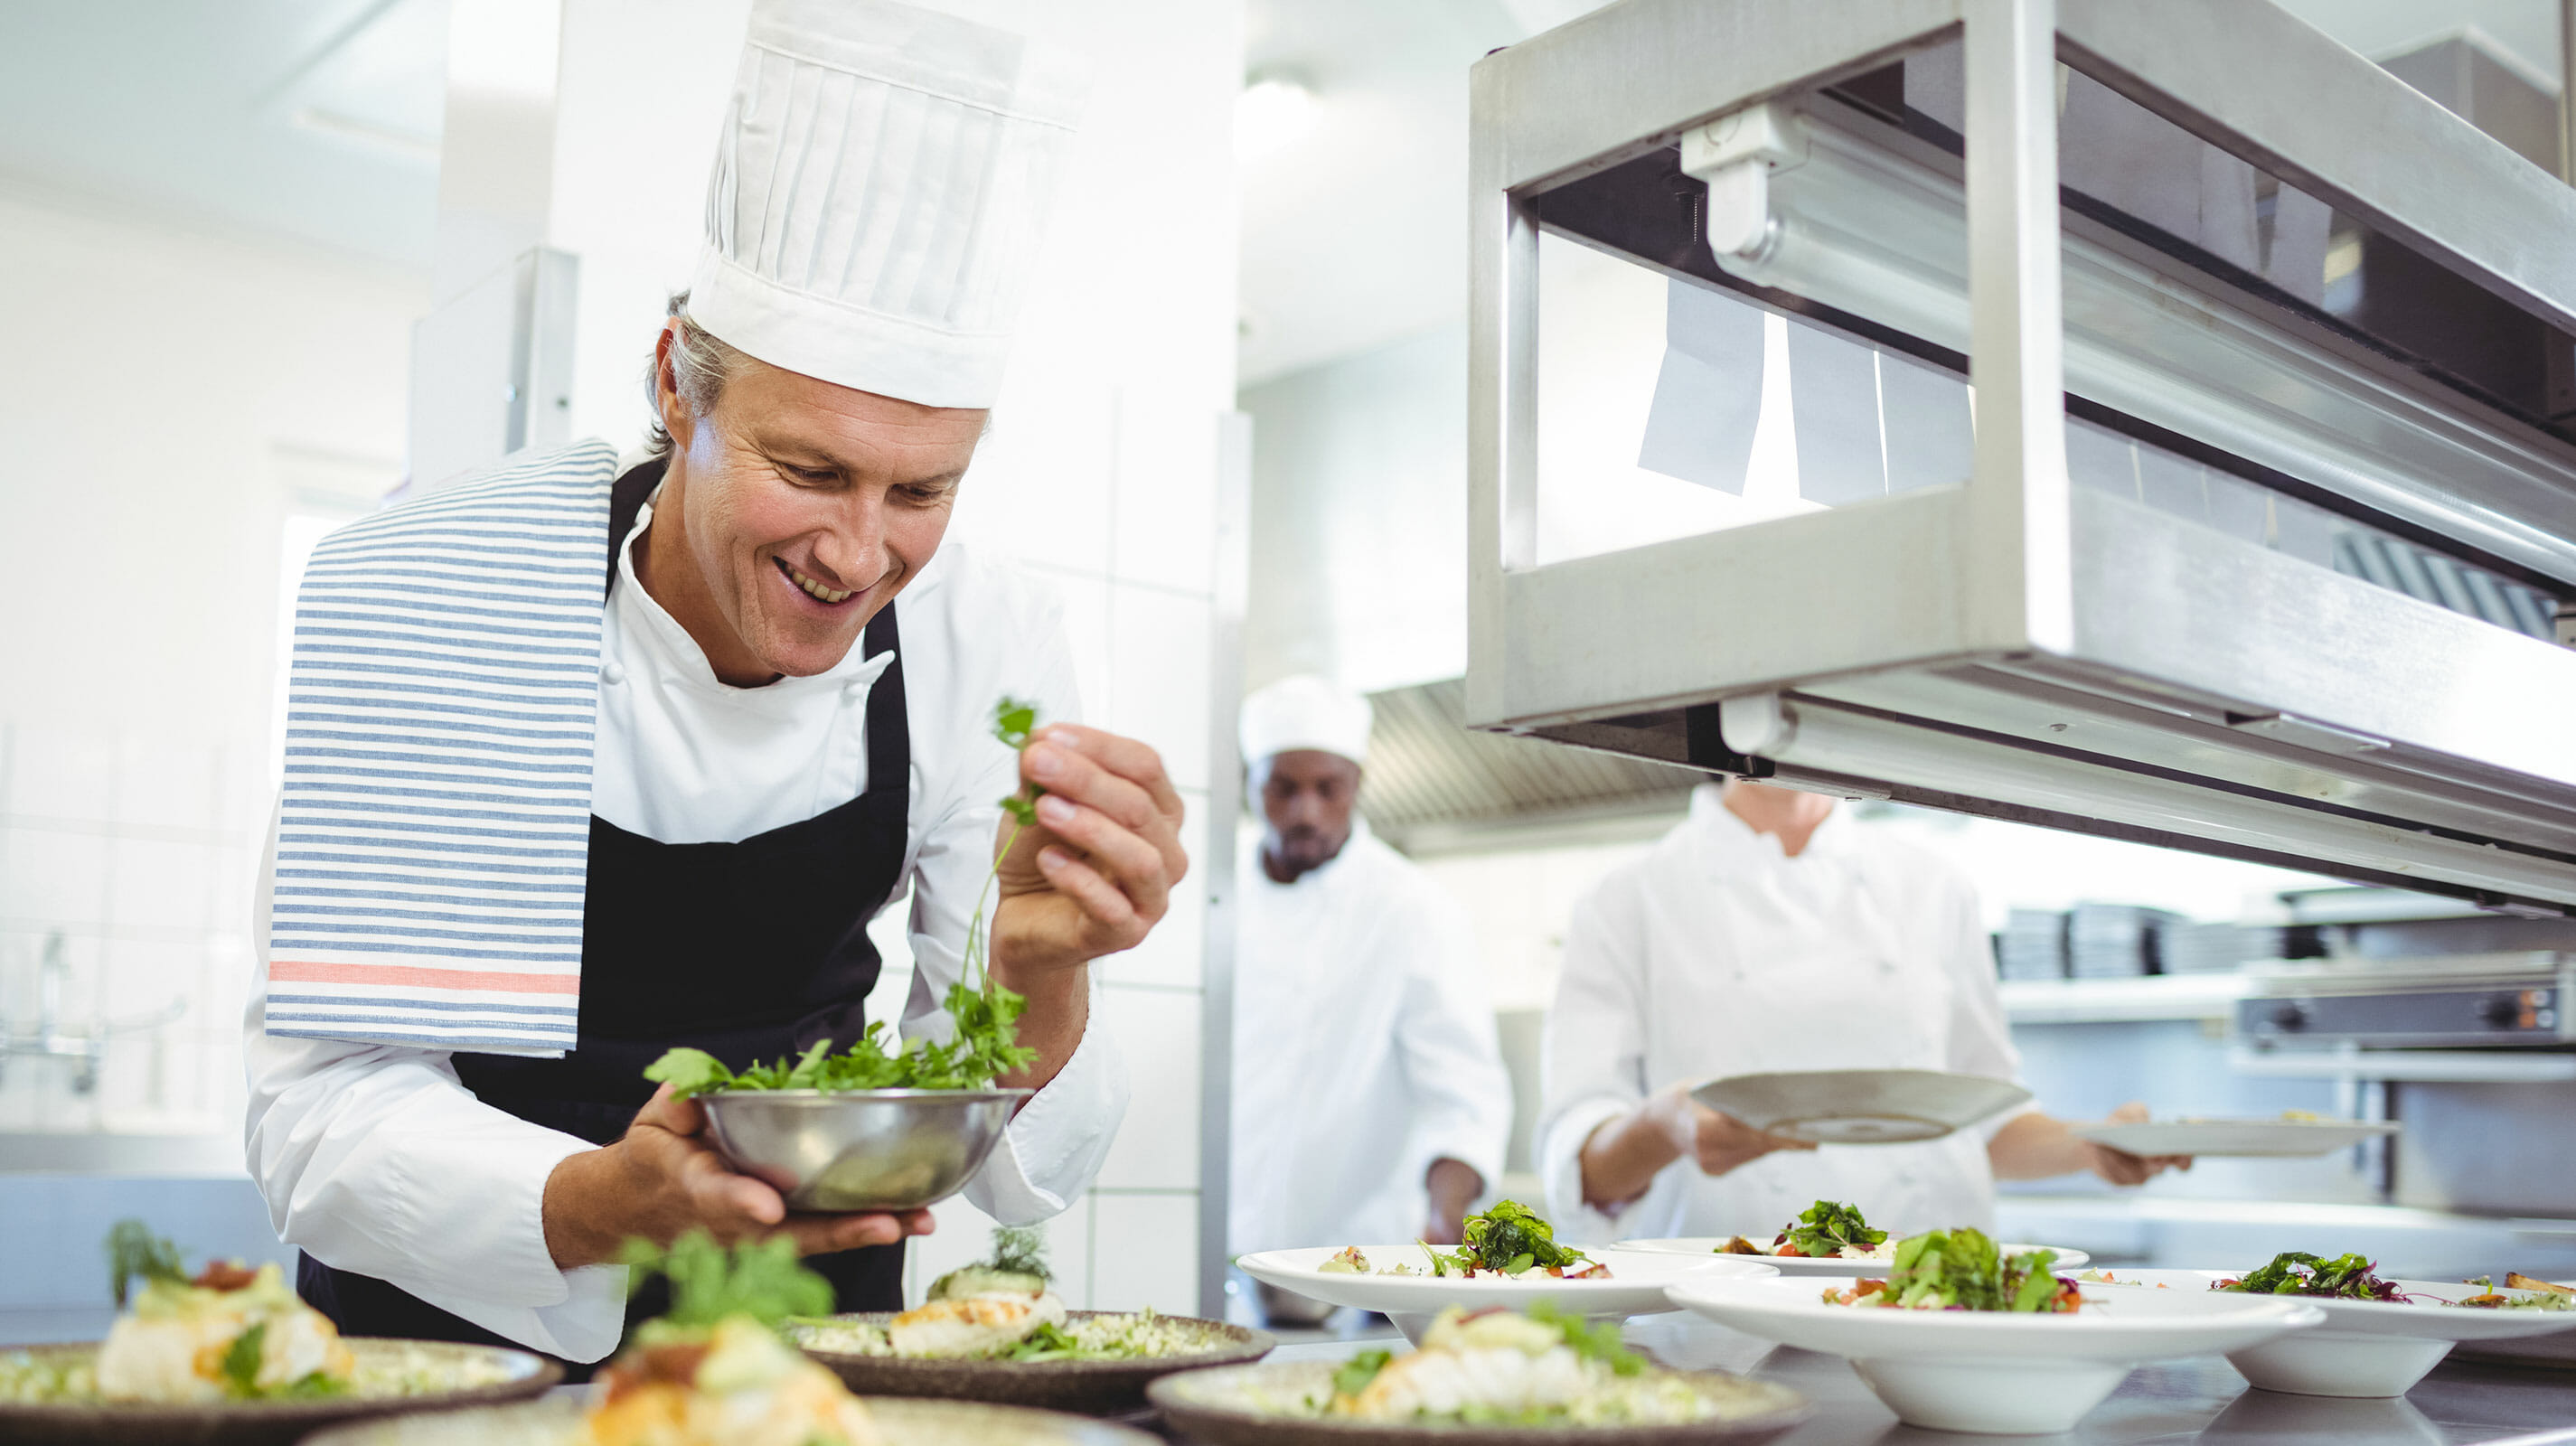 Chef smiling and plating salads